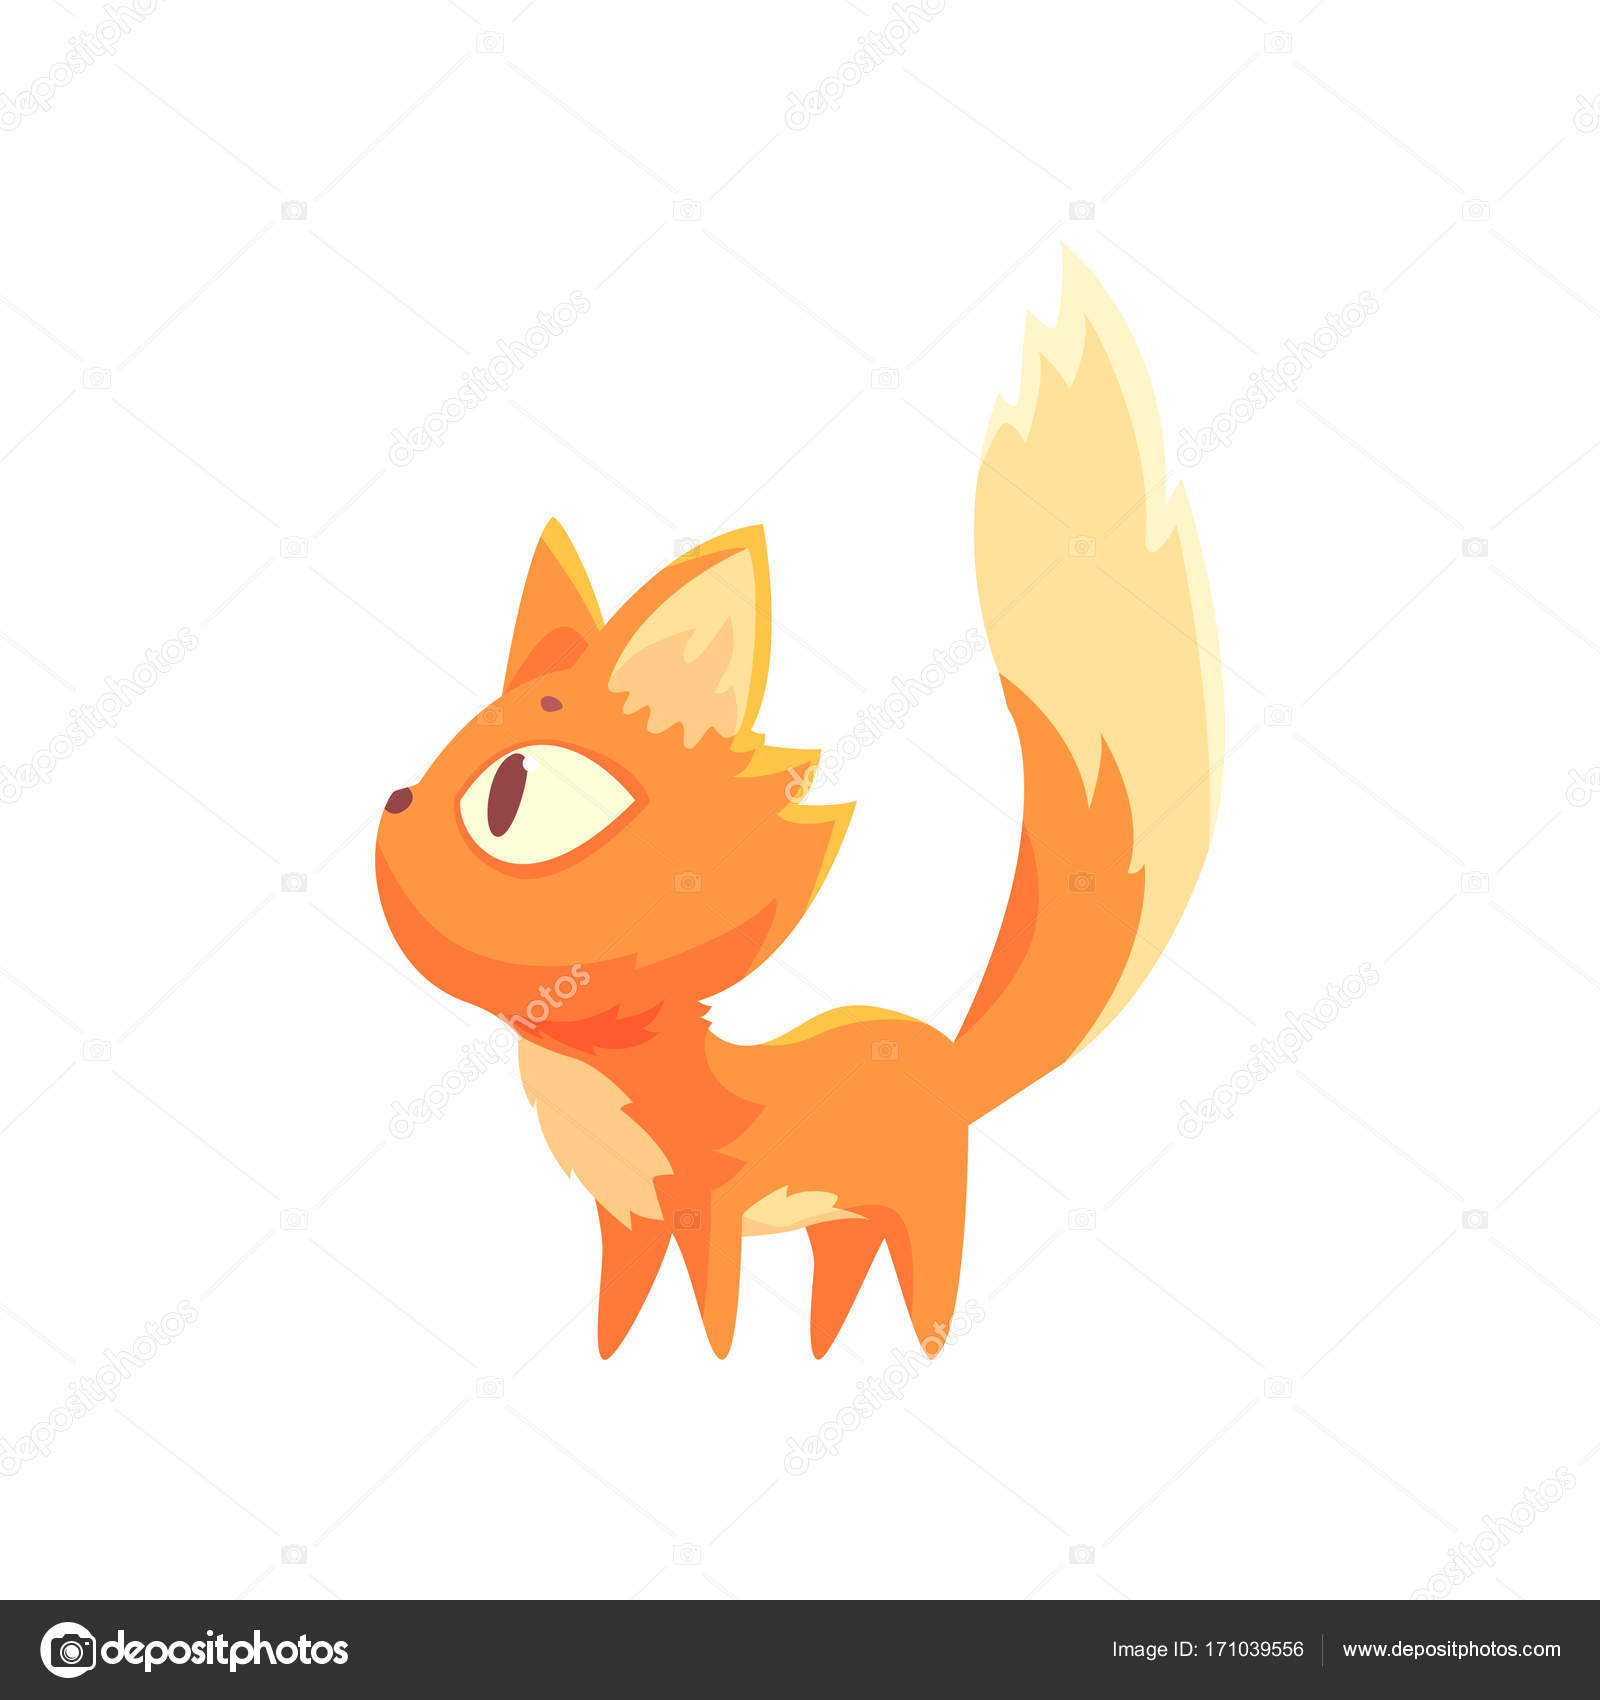 Image of: Download Grappige Rode Kitten Cute Cartoon Kat Karakter Vector Illustratie Stockvector Depositphotos Grappige Rode Kitten Cute Cartoon Kat Karakter Vector Illustratie